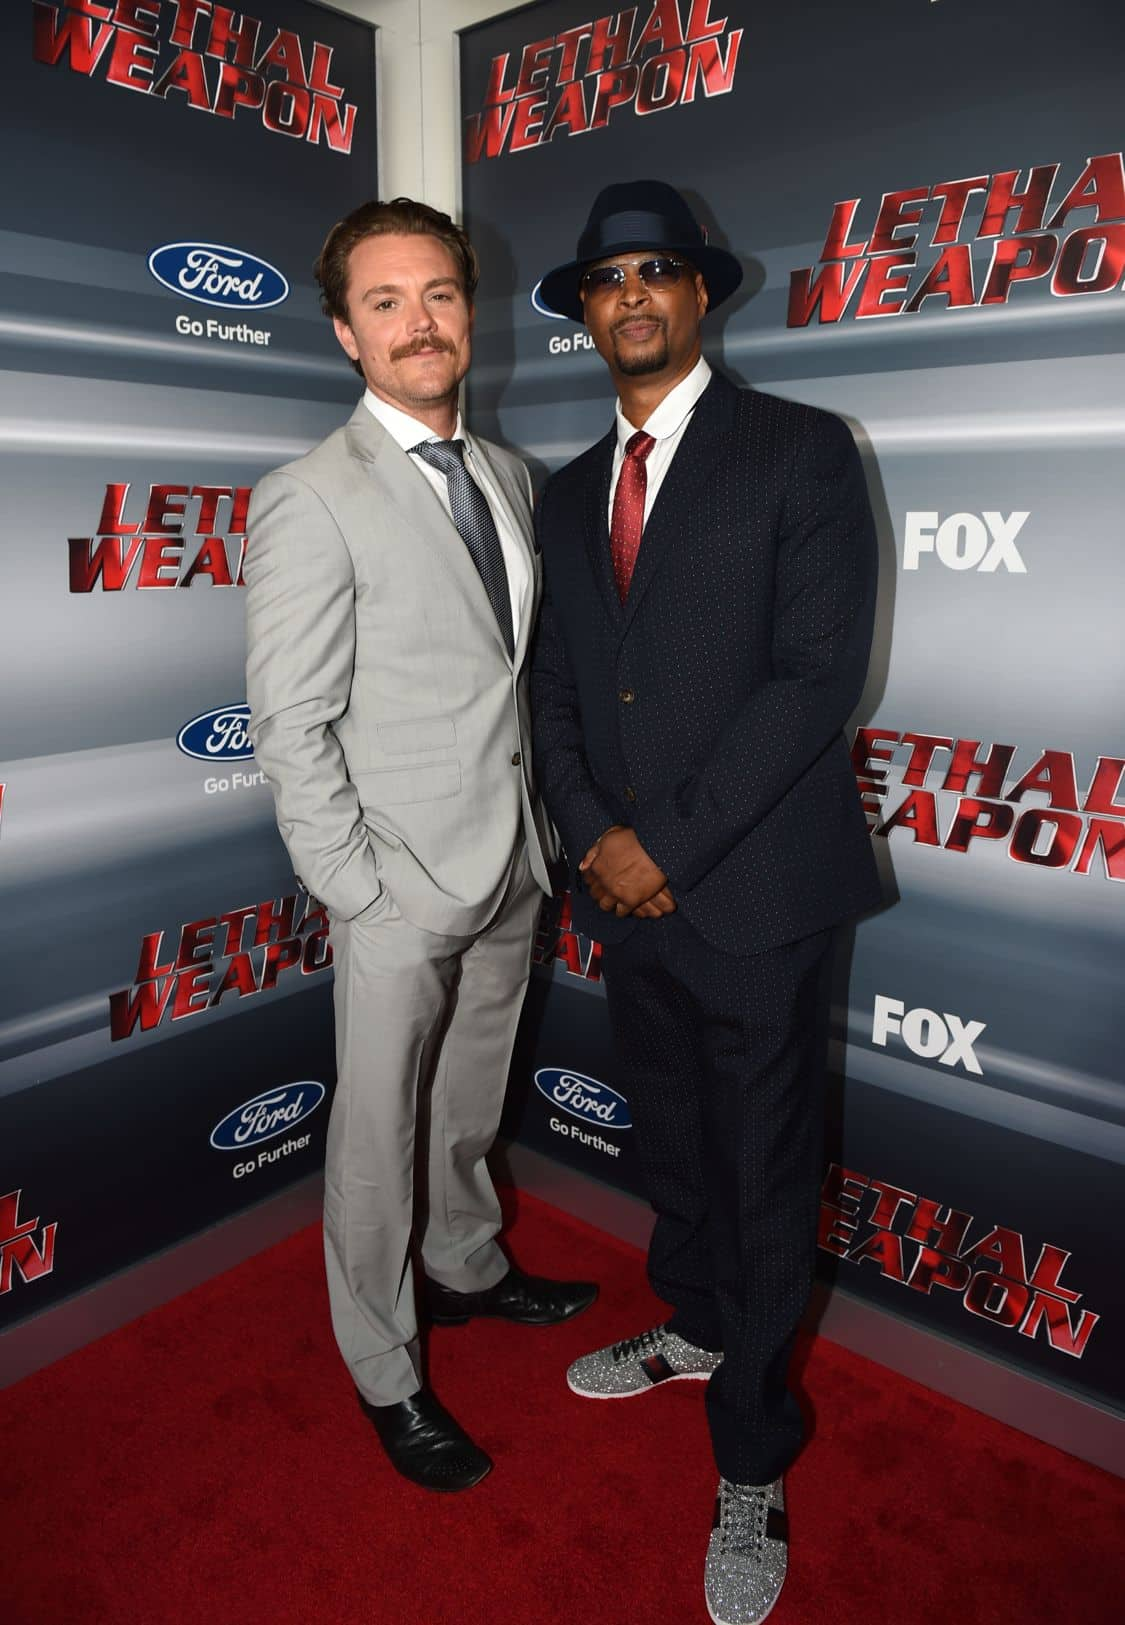 LETHAL WEAPON: Pictured L-R: Clayne Crawford and Damon Wayans celebrate the LETHAL WEAPON premiere party at NeueHouse Hollywood on Monday, Sept. 12, in Los Angeles, CA, sponsored by Ford. LETHAL WEAPON premieres Wednesday, Sept. 21 (8:00-9:00 PM ET/PT) on FOX. ©2016 Fox Broadcasting Co. CR: Frank Micelotta/FOX